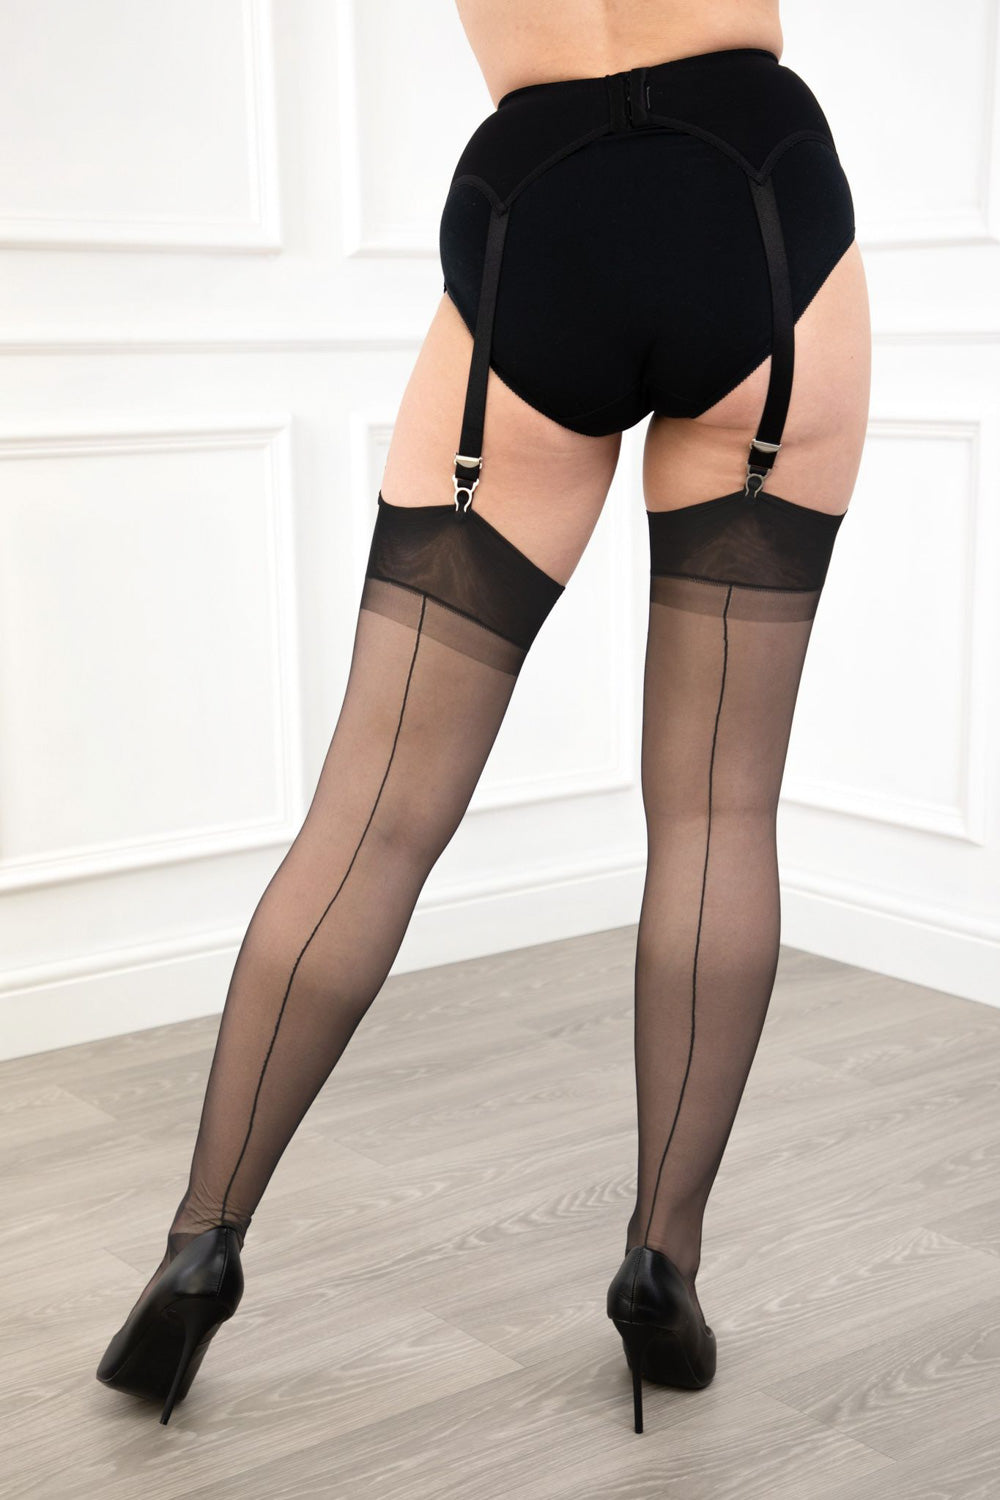 Gio Reinforced Heel and Toe Seamed Nylon Stockings